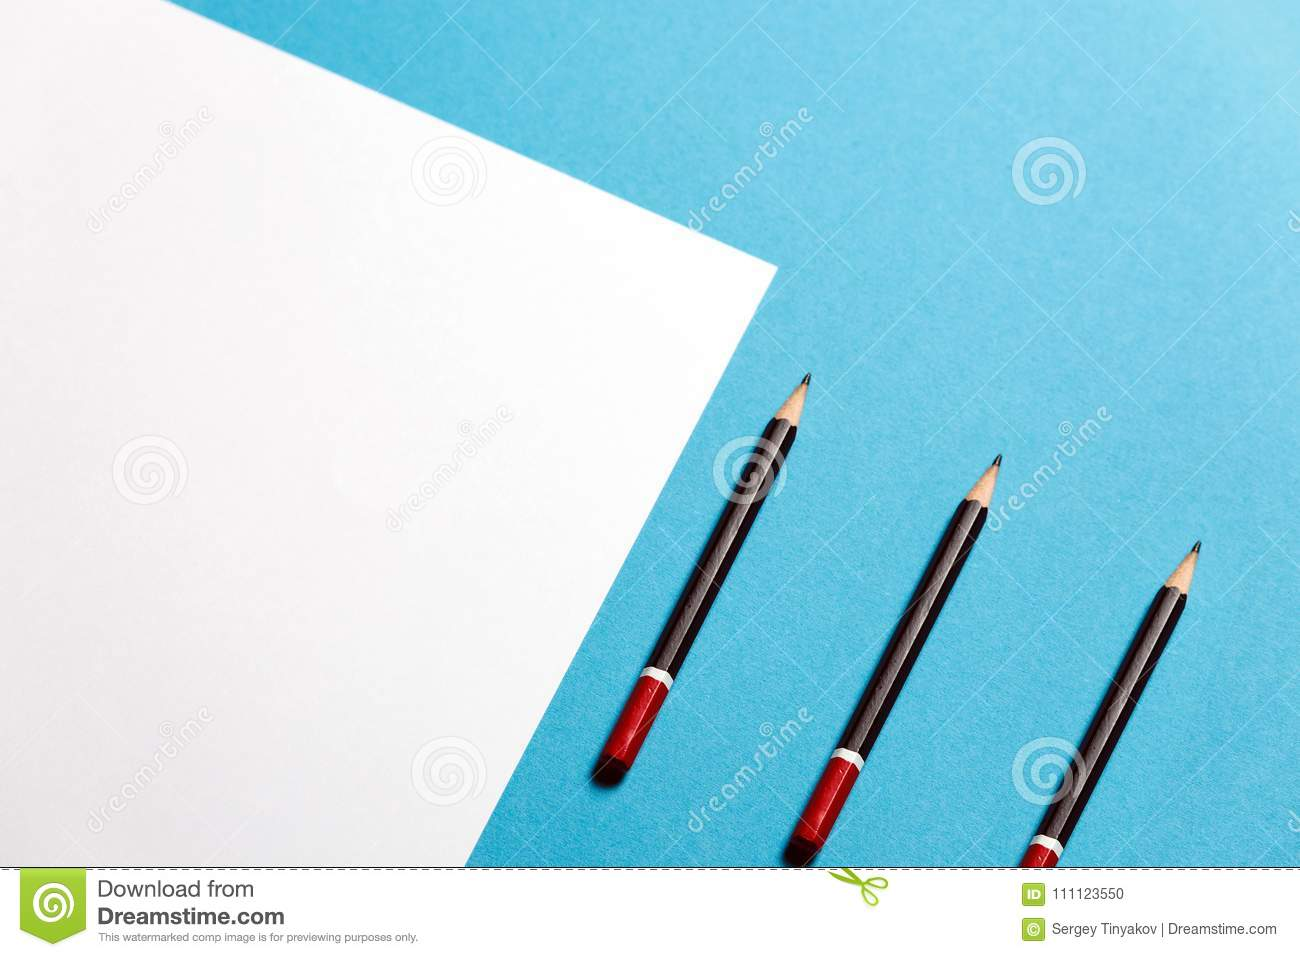 Blue White Office Space Tiffany Black Pencil Lies On Clean White Sheet Of Paper On Blue Background Top View Creative Office Space Minimalism Concept Dreamstimecom Three Pencils Lies On Paper Sheet On Blue Background Top View